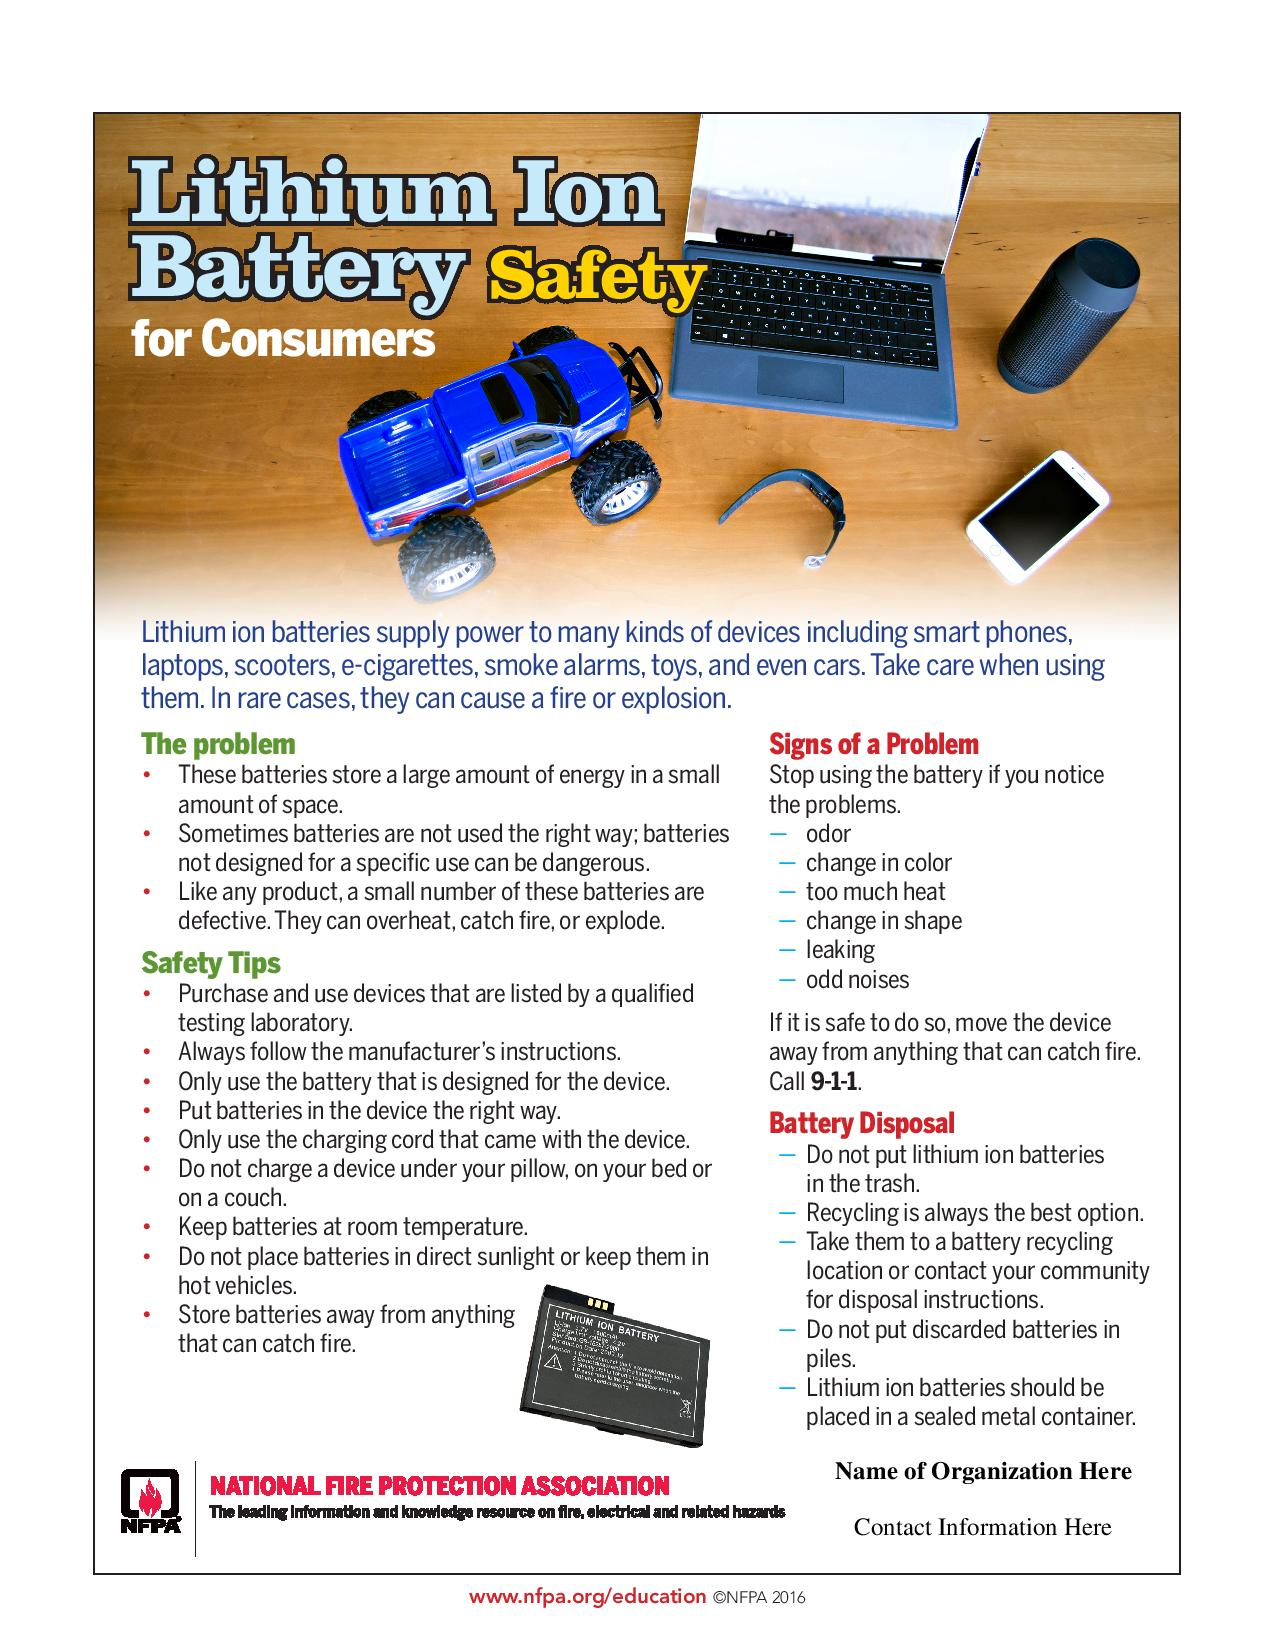 LithiumIonBatterySafety-page-001